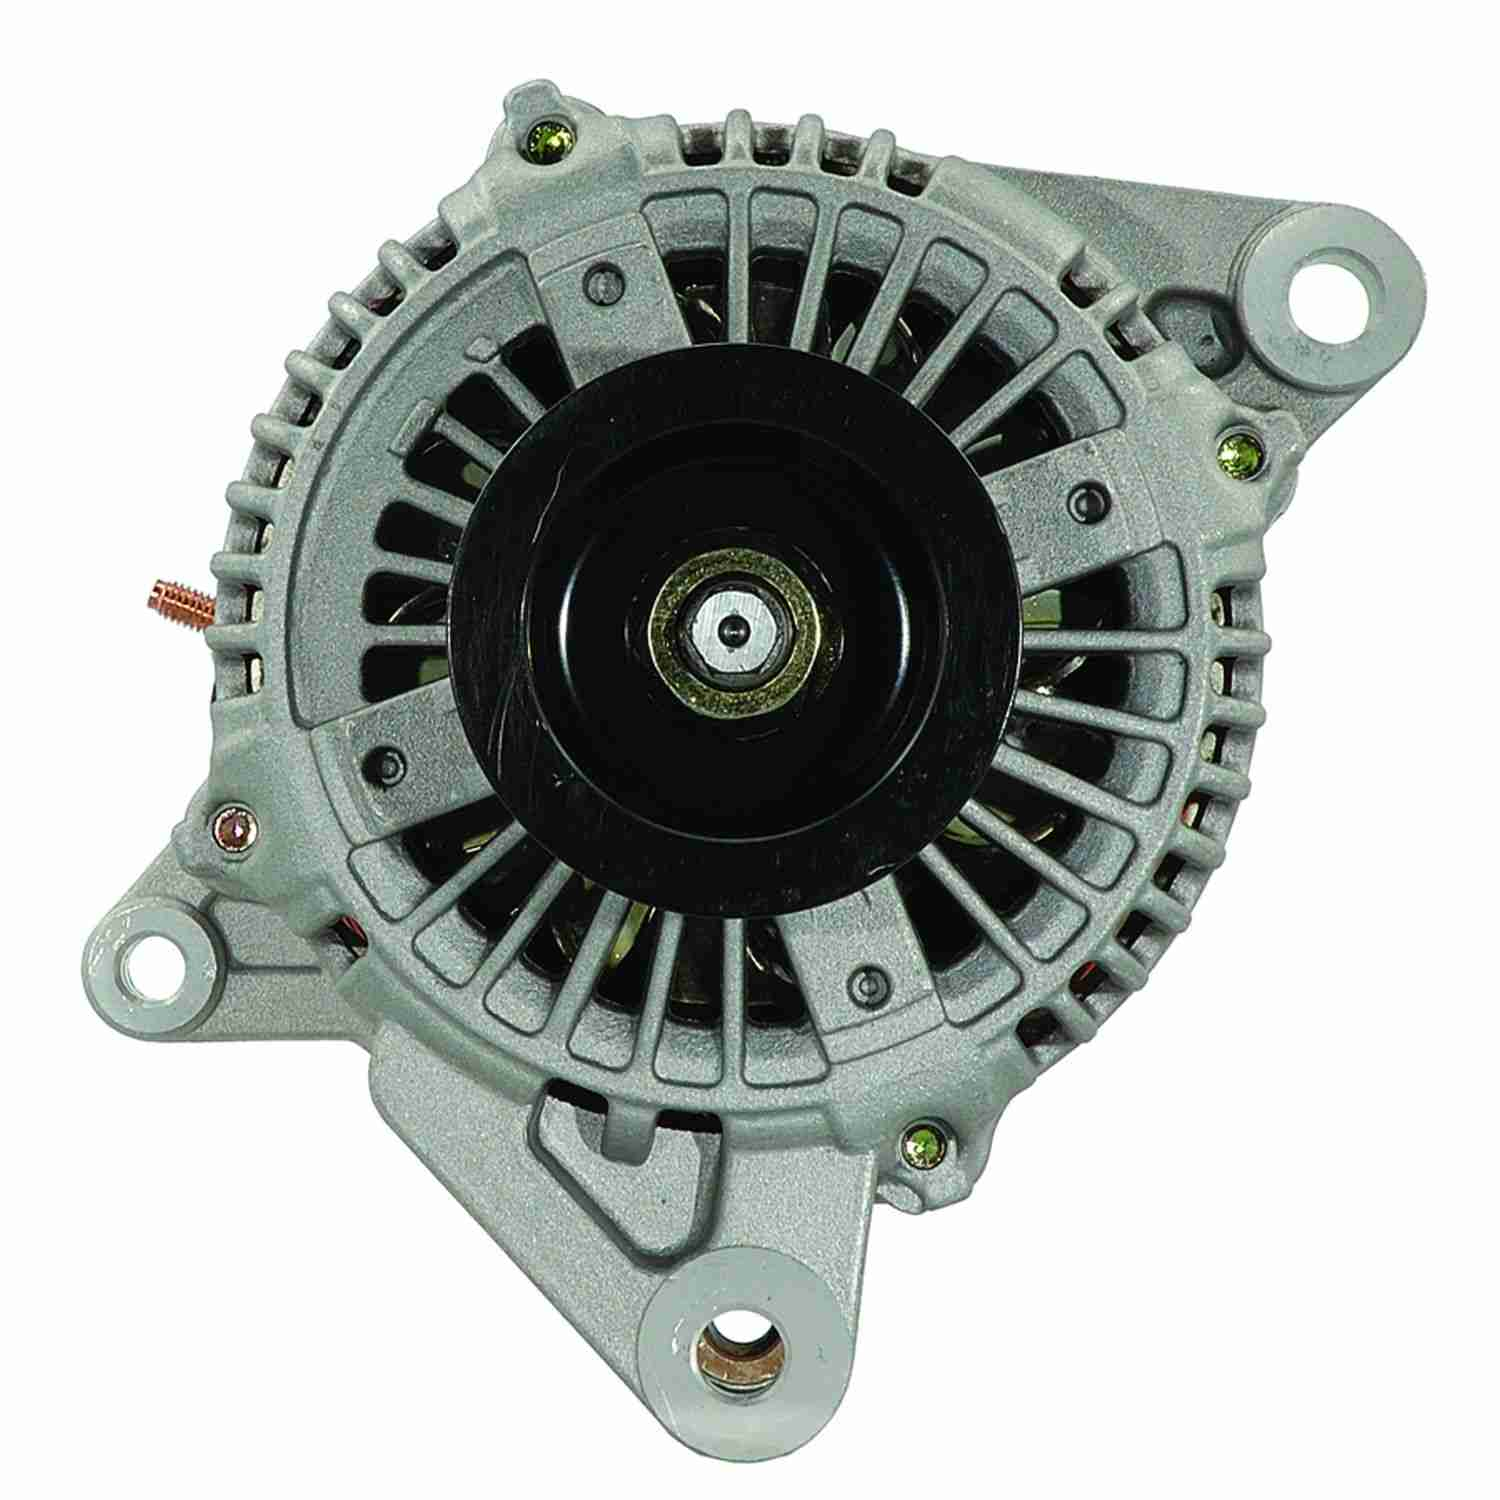 ACDELCO GOLD/PROFESSIONAL - Alternator - DCC 335-1180